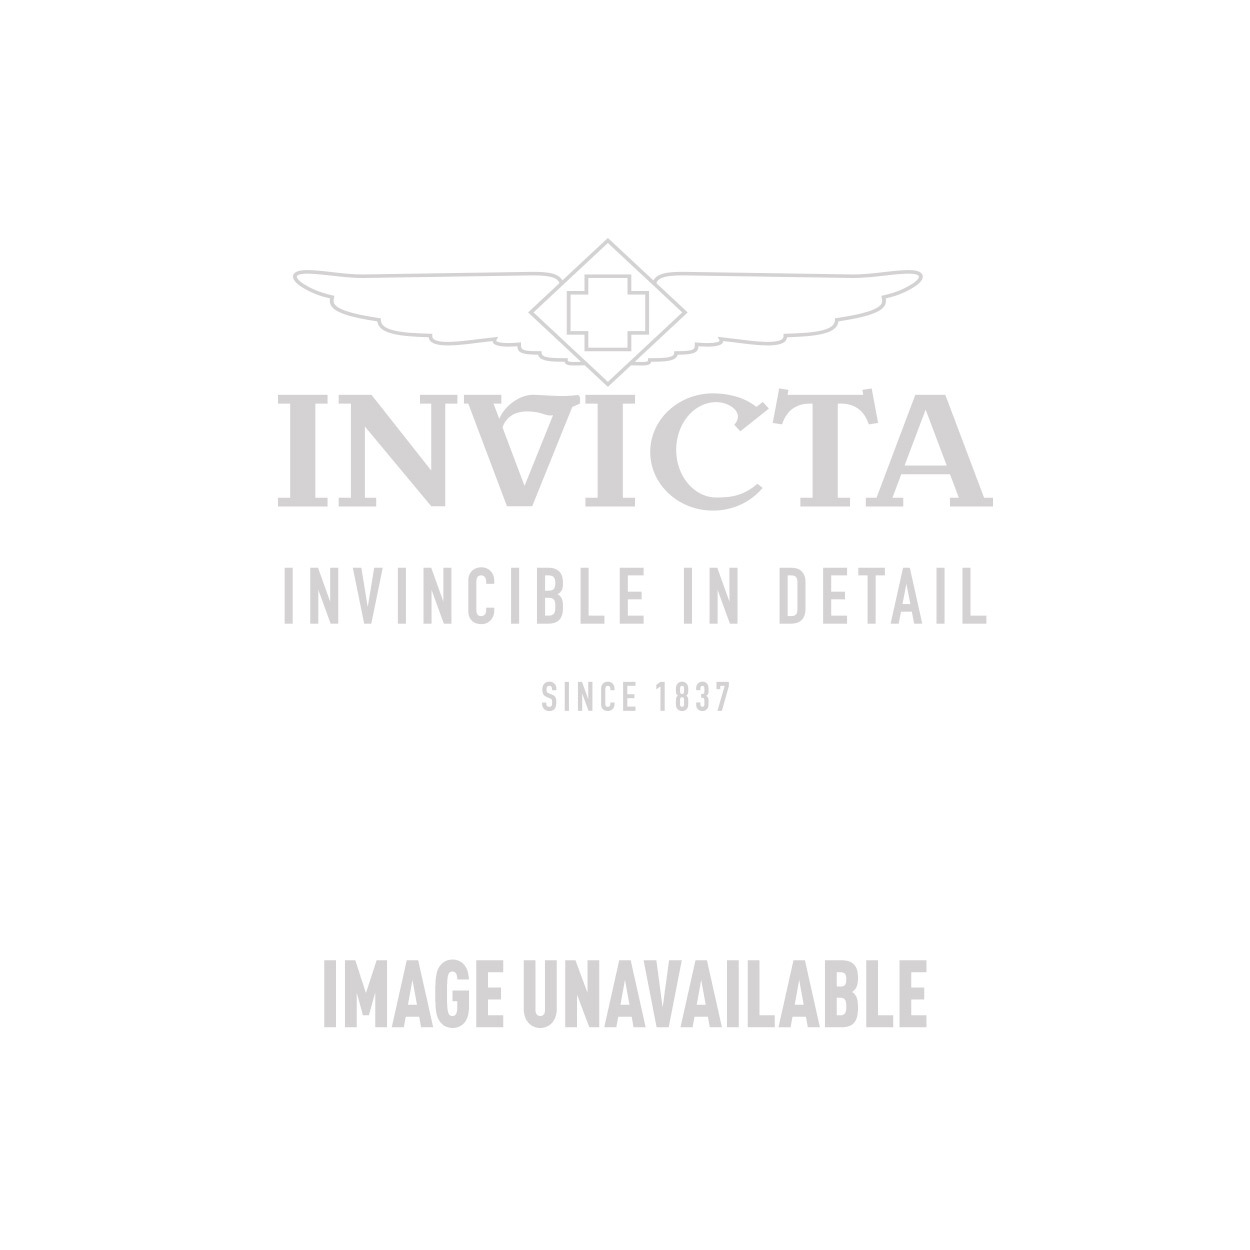 Invicta Specialty Swiss Movement Quartz Watch - Black case with Steel, Black tone Stainless Steel band - Model 1232